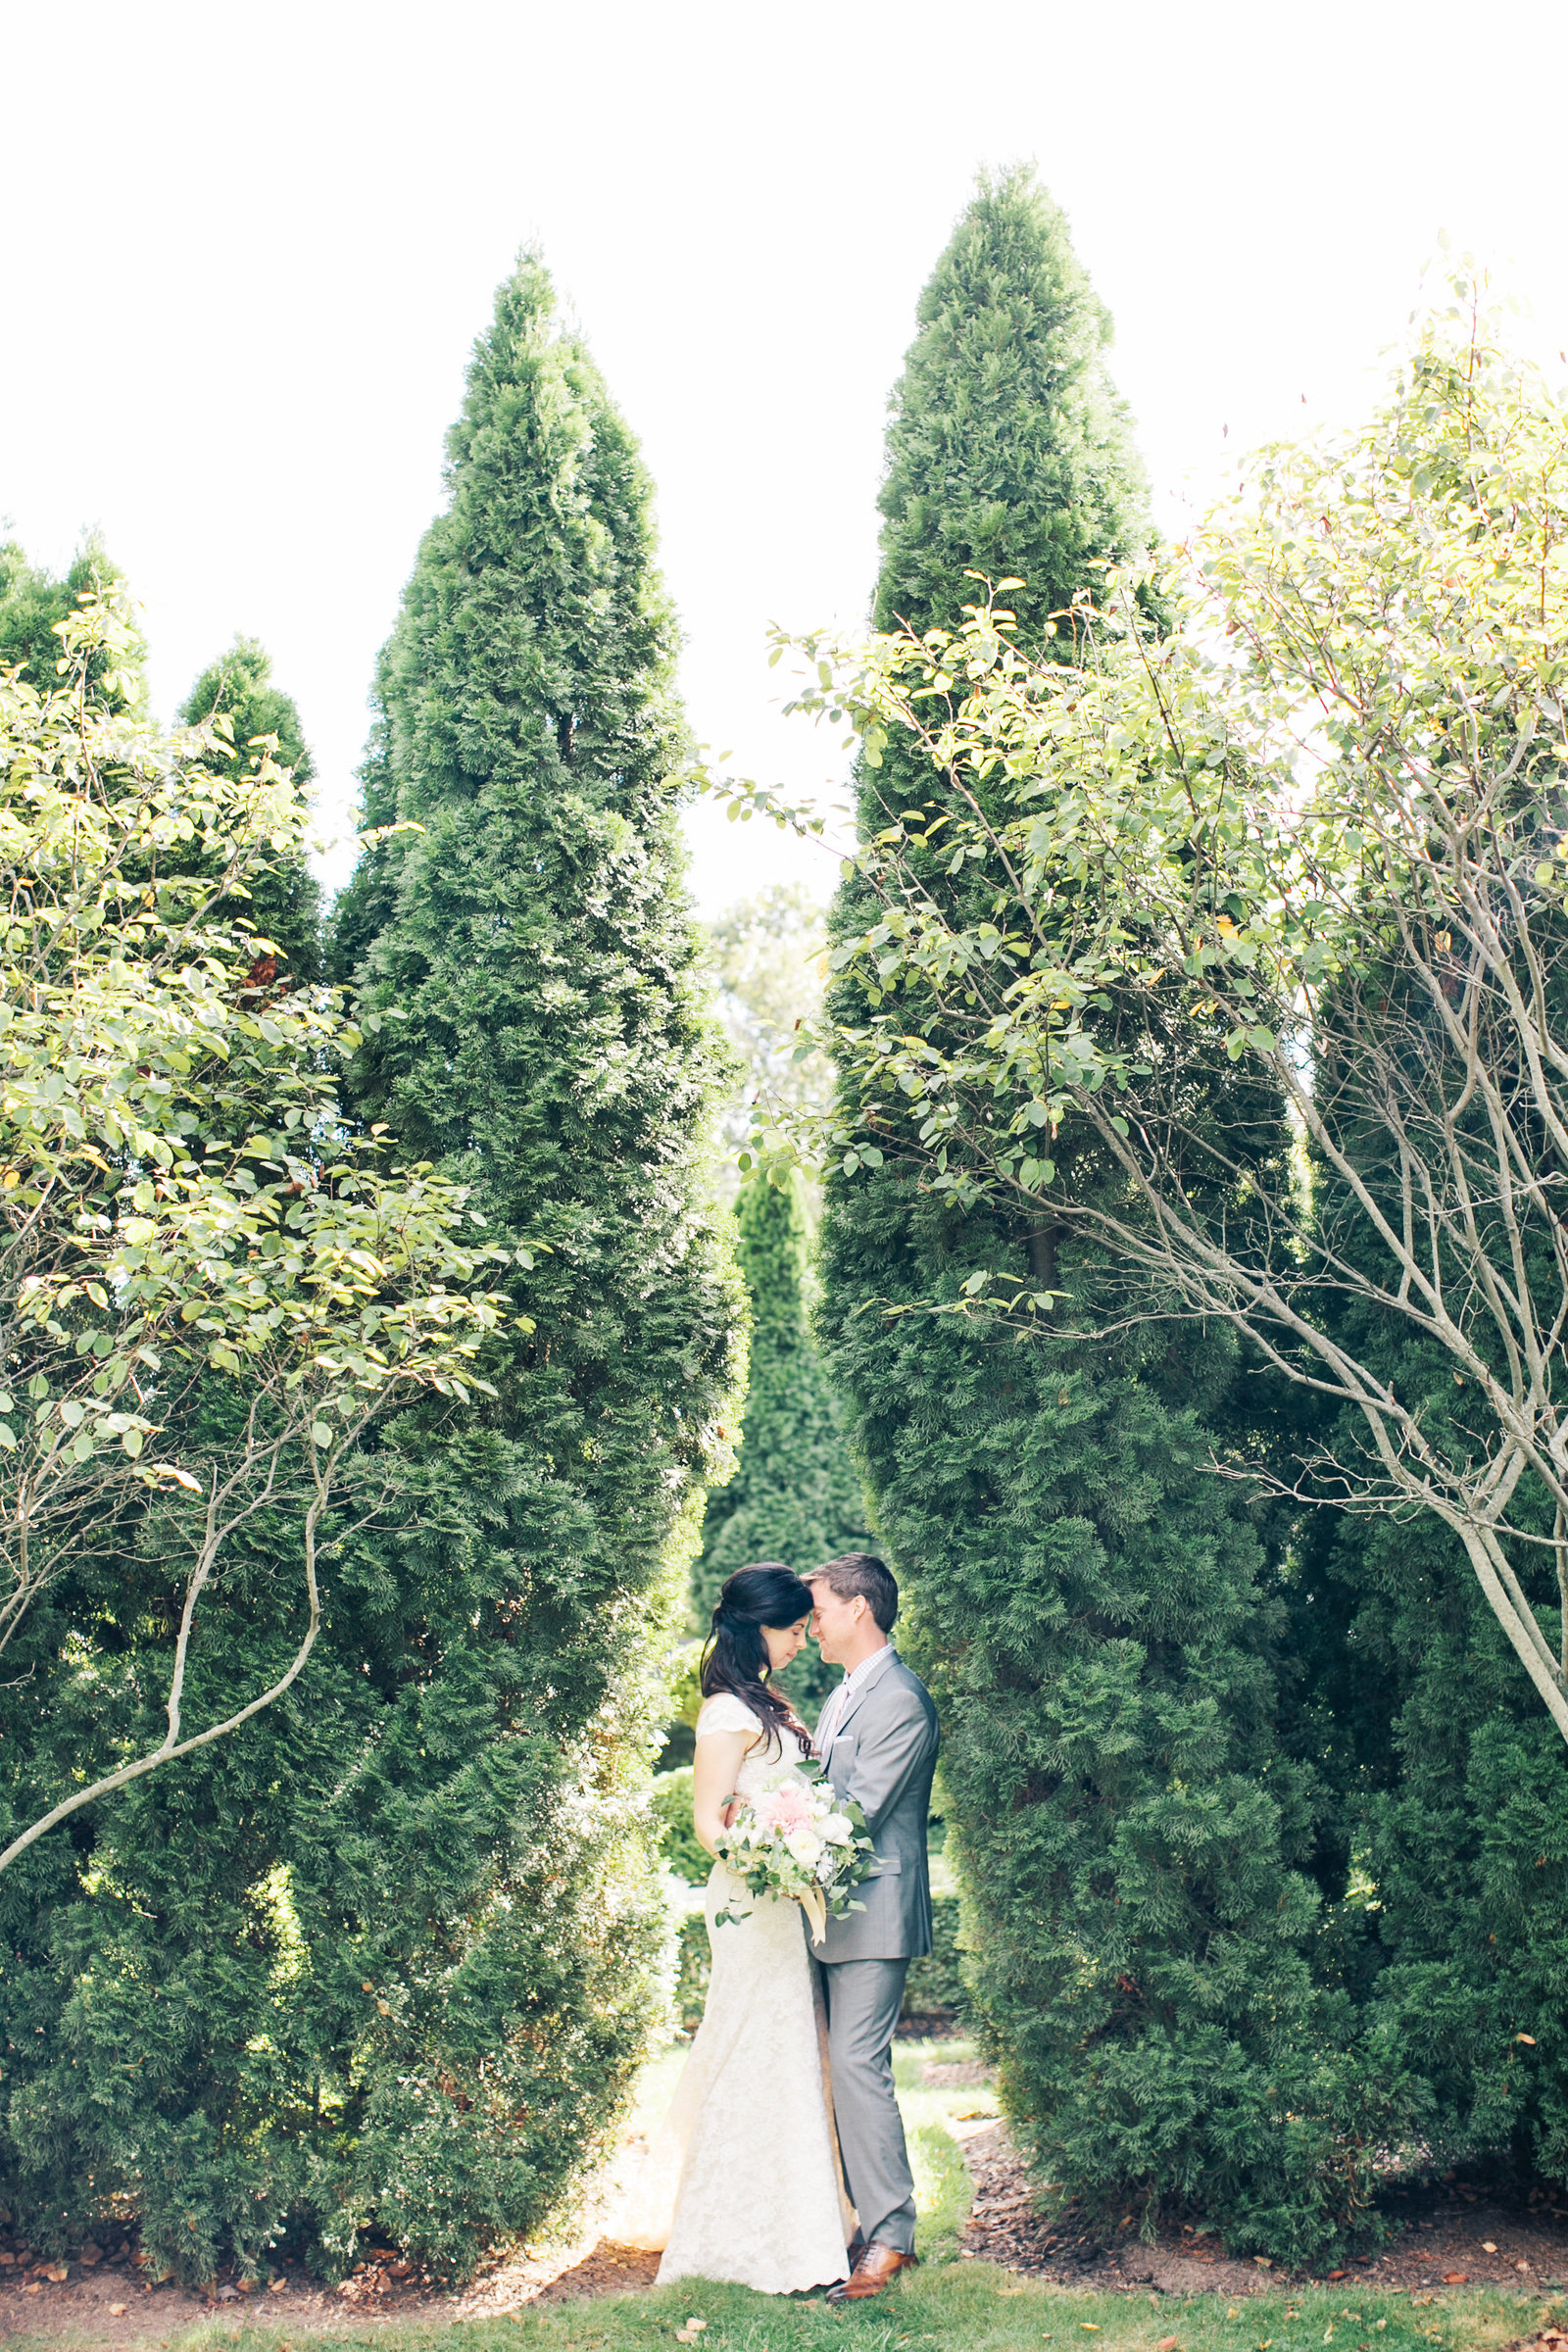 171Morgan_Kevin_WeddingIMG_4703